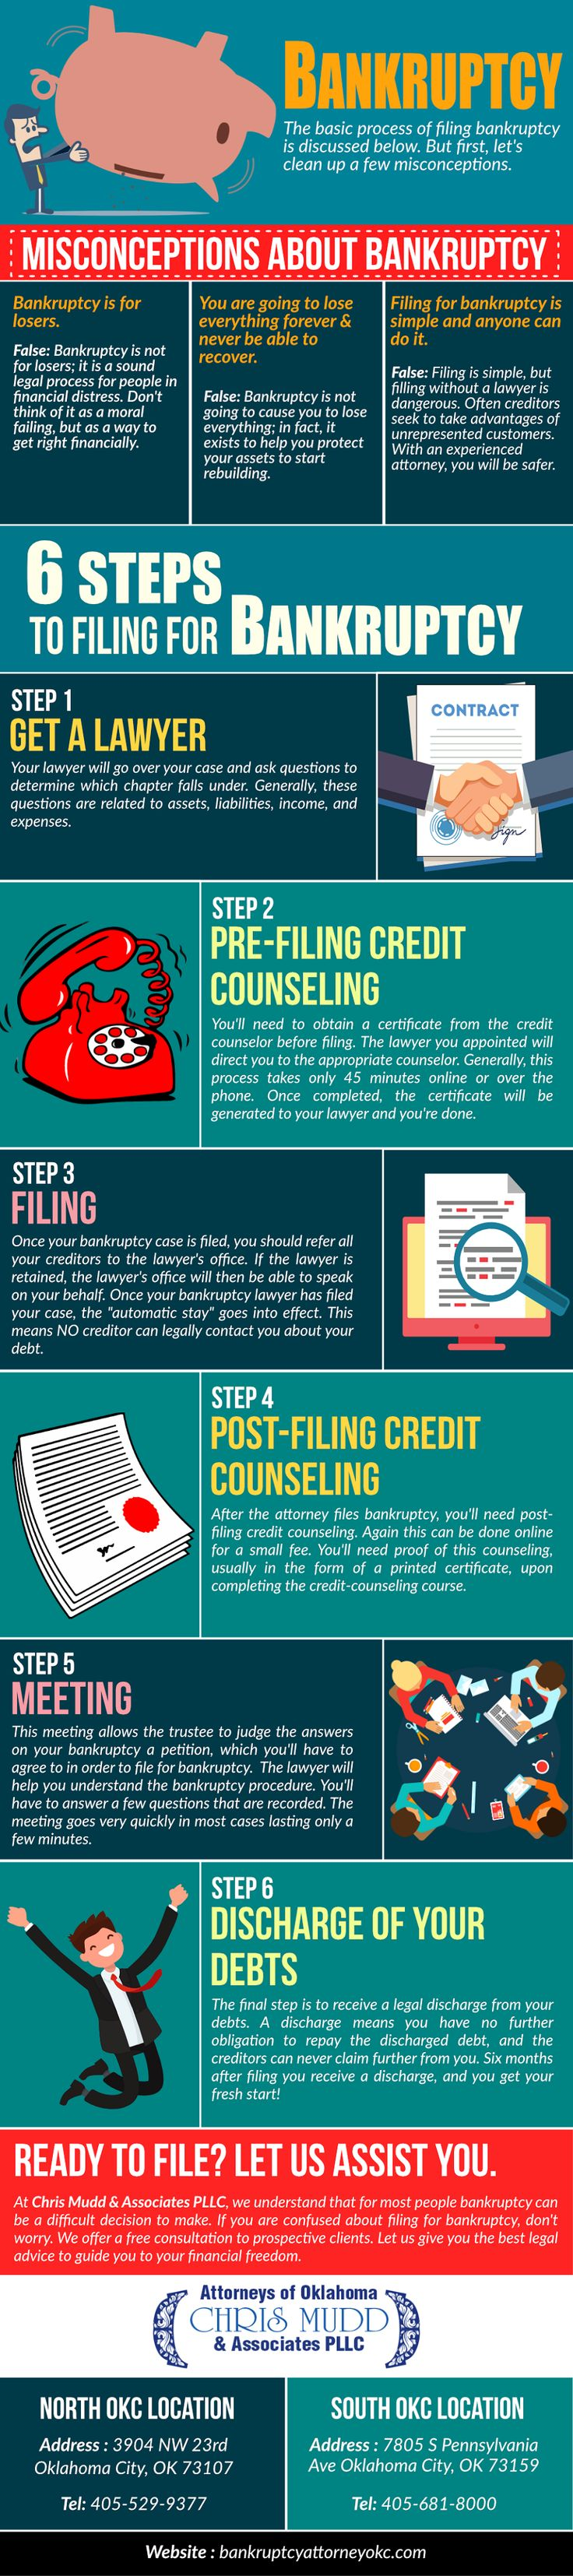 6 steps to filing for Bankruptcy #infographic http://bit.ly/2mvUxoF